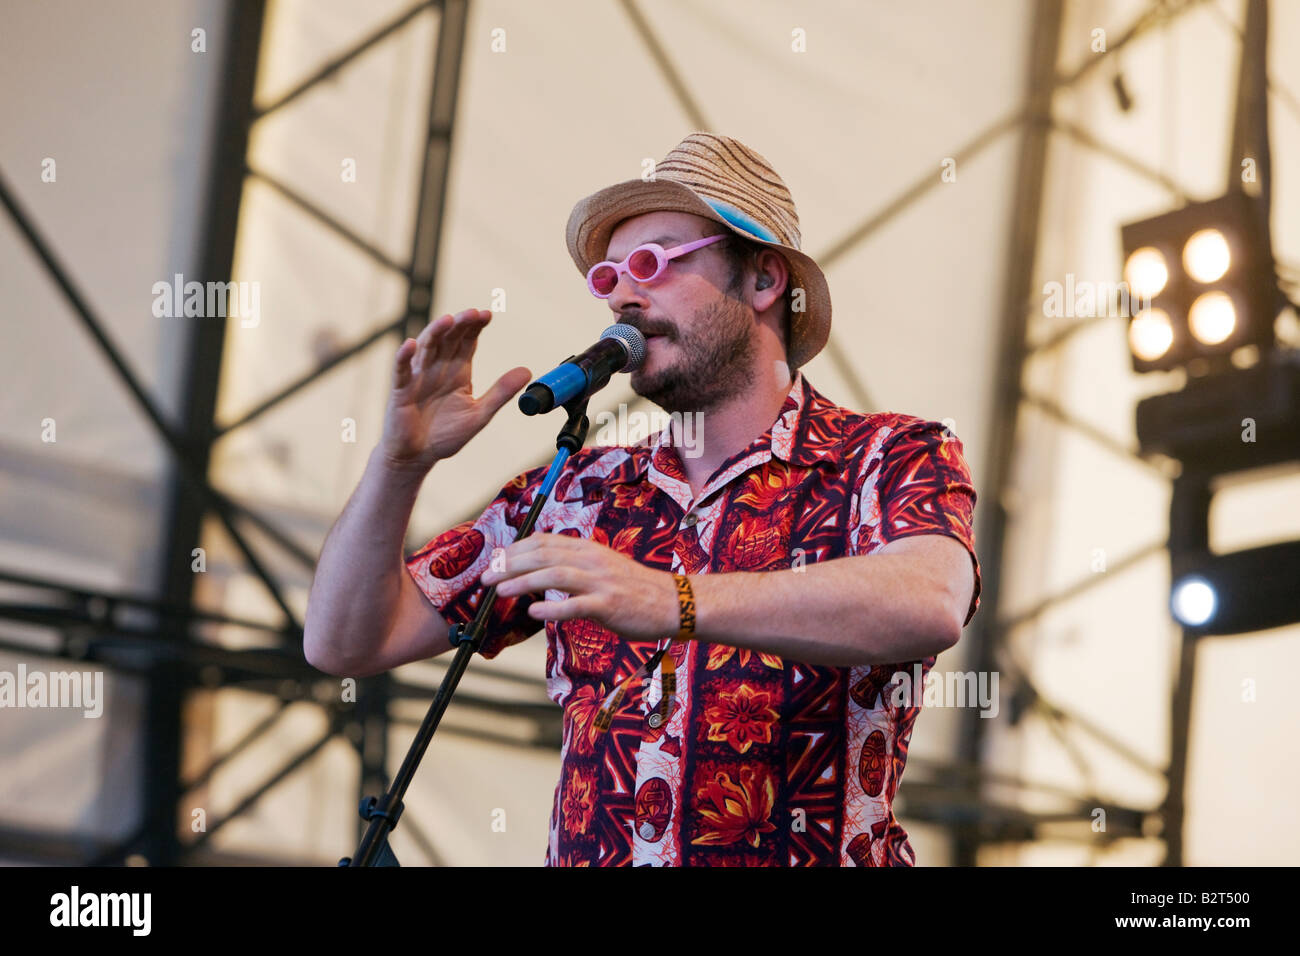 Julian Barratt of The Mighty Boosh performing live at The Big Chill Festival 2008, Eastnor Castle Herefordshire - Stock Image